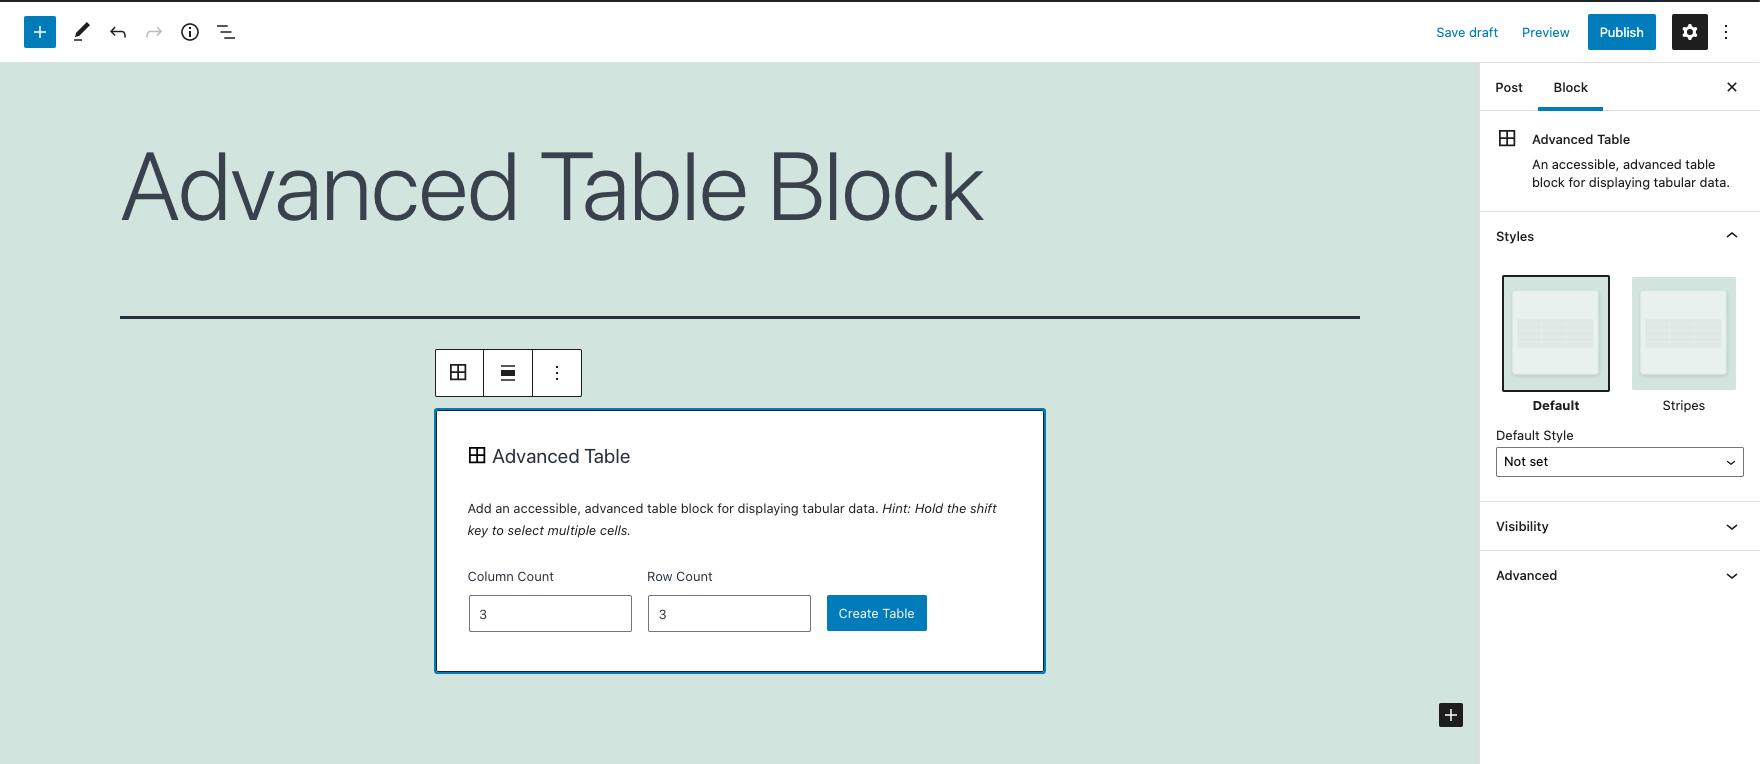 Screenshot showing the advanced table block setup screen allowing a user to choose the number of columns and rows for the table